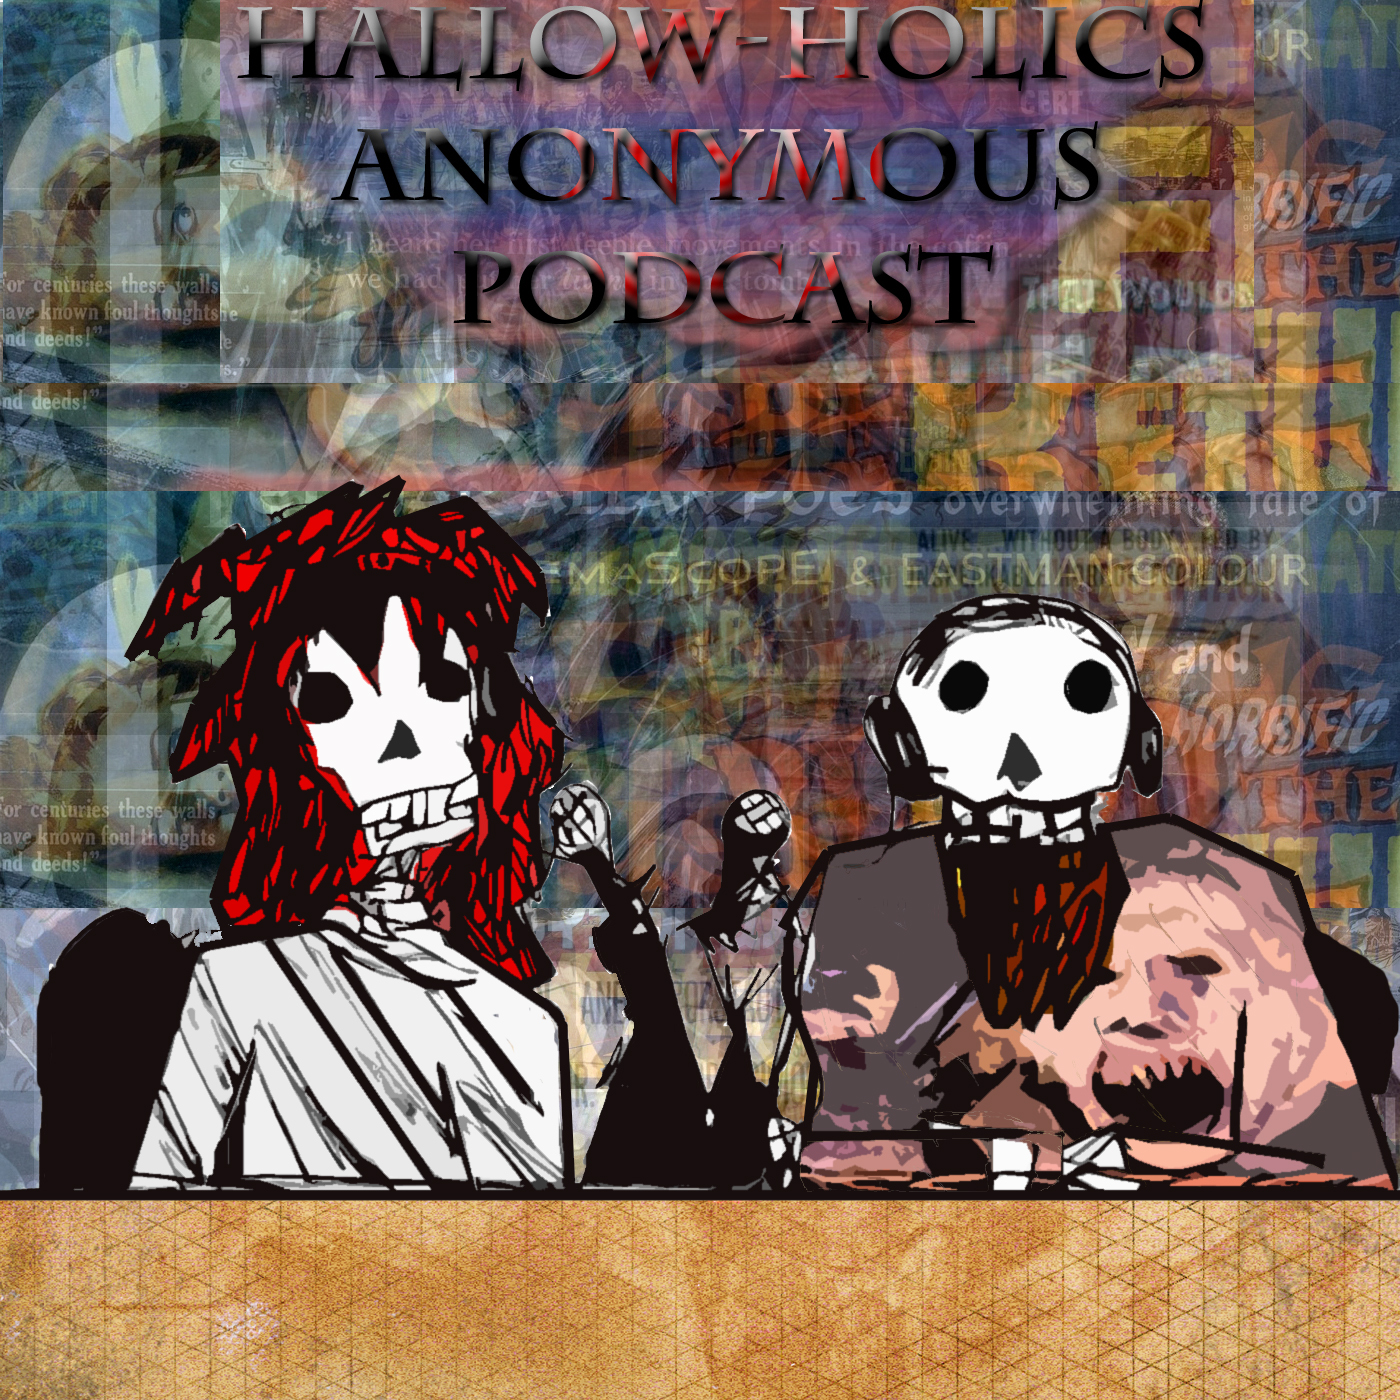 Hallow-Holics Anonymous Podcast show art